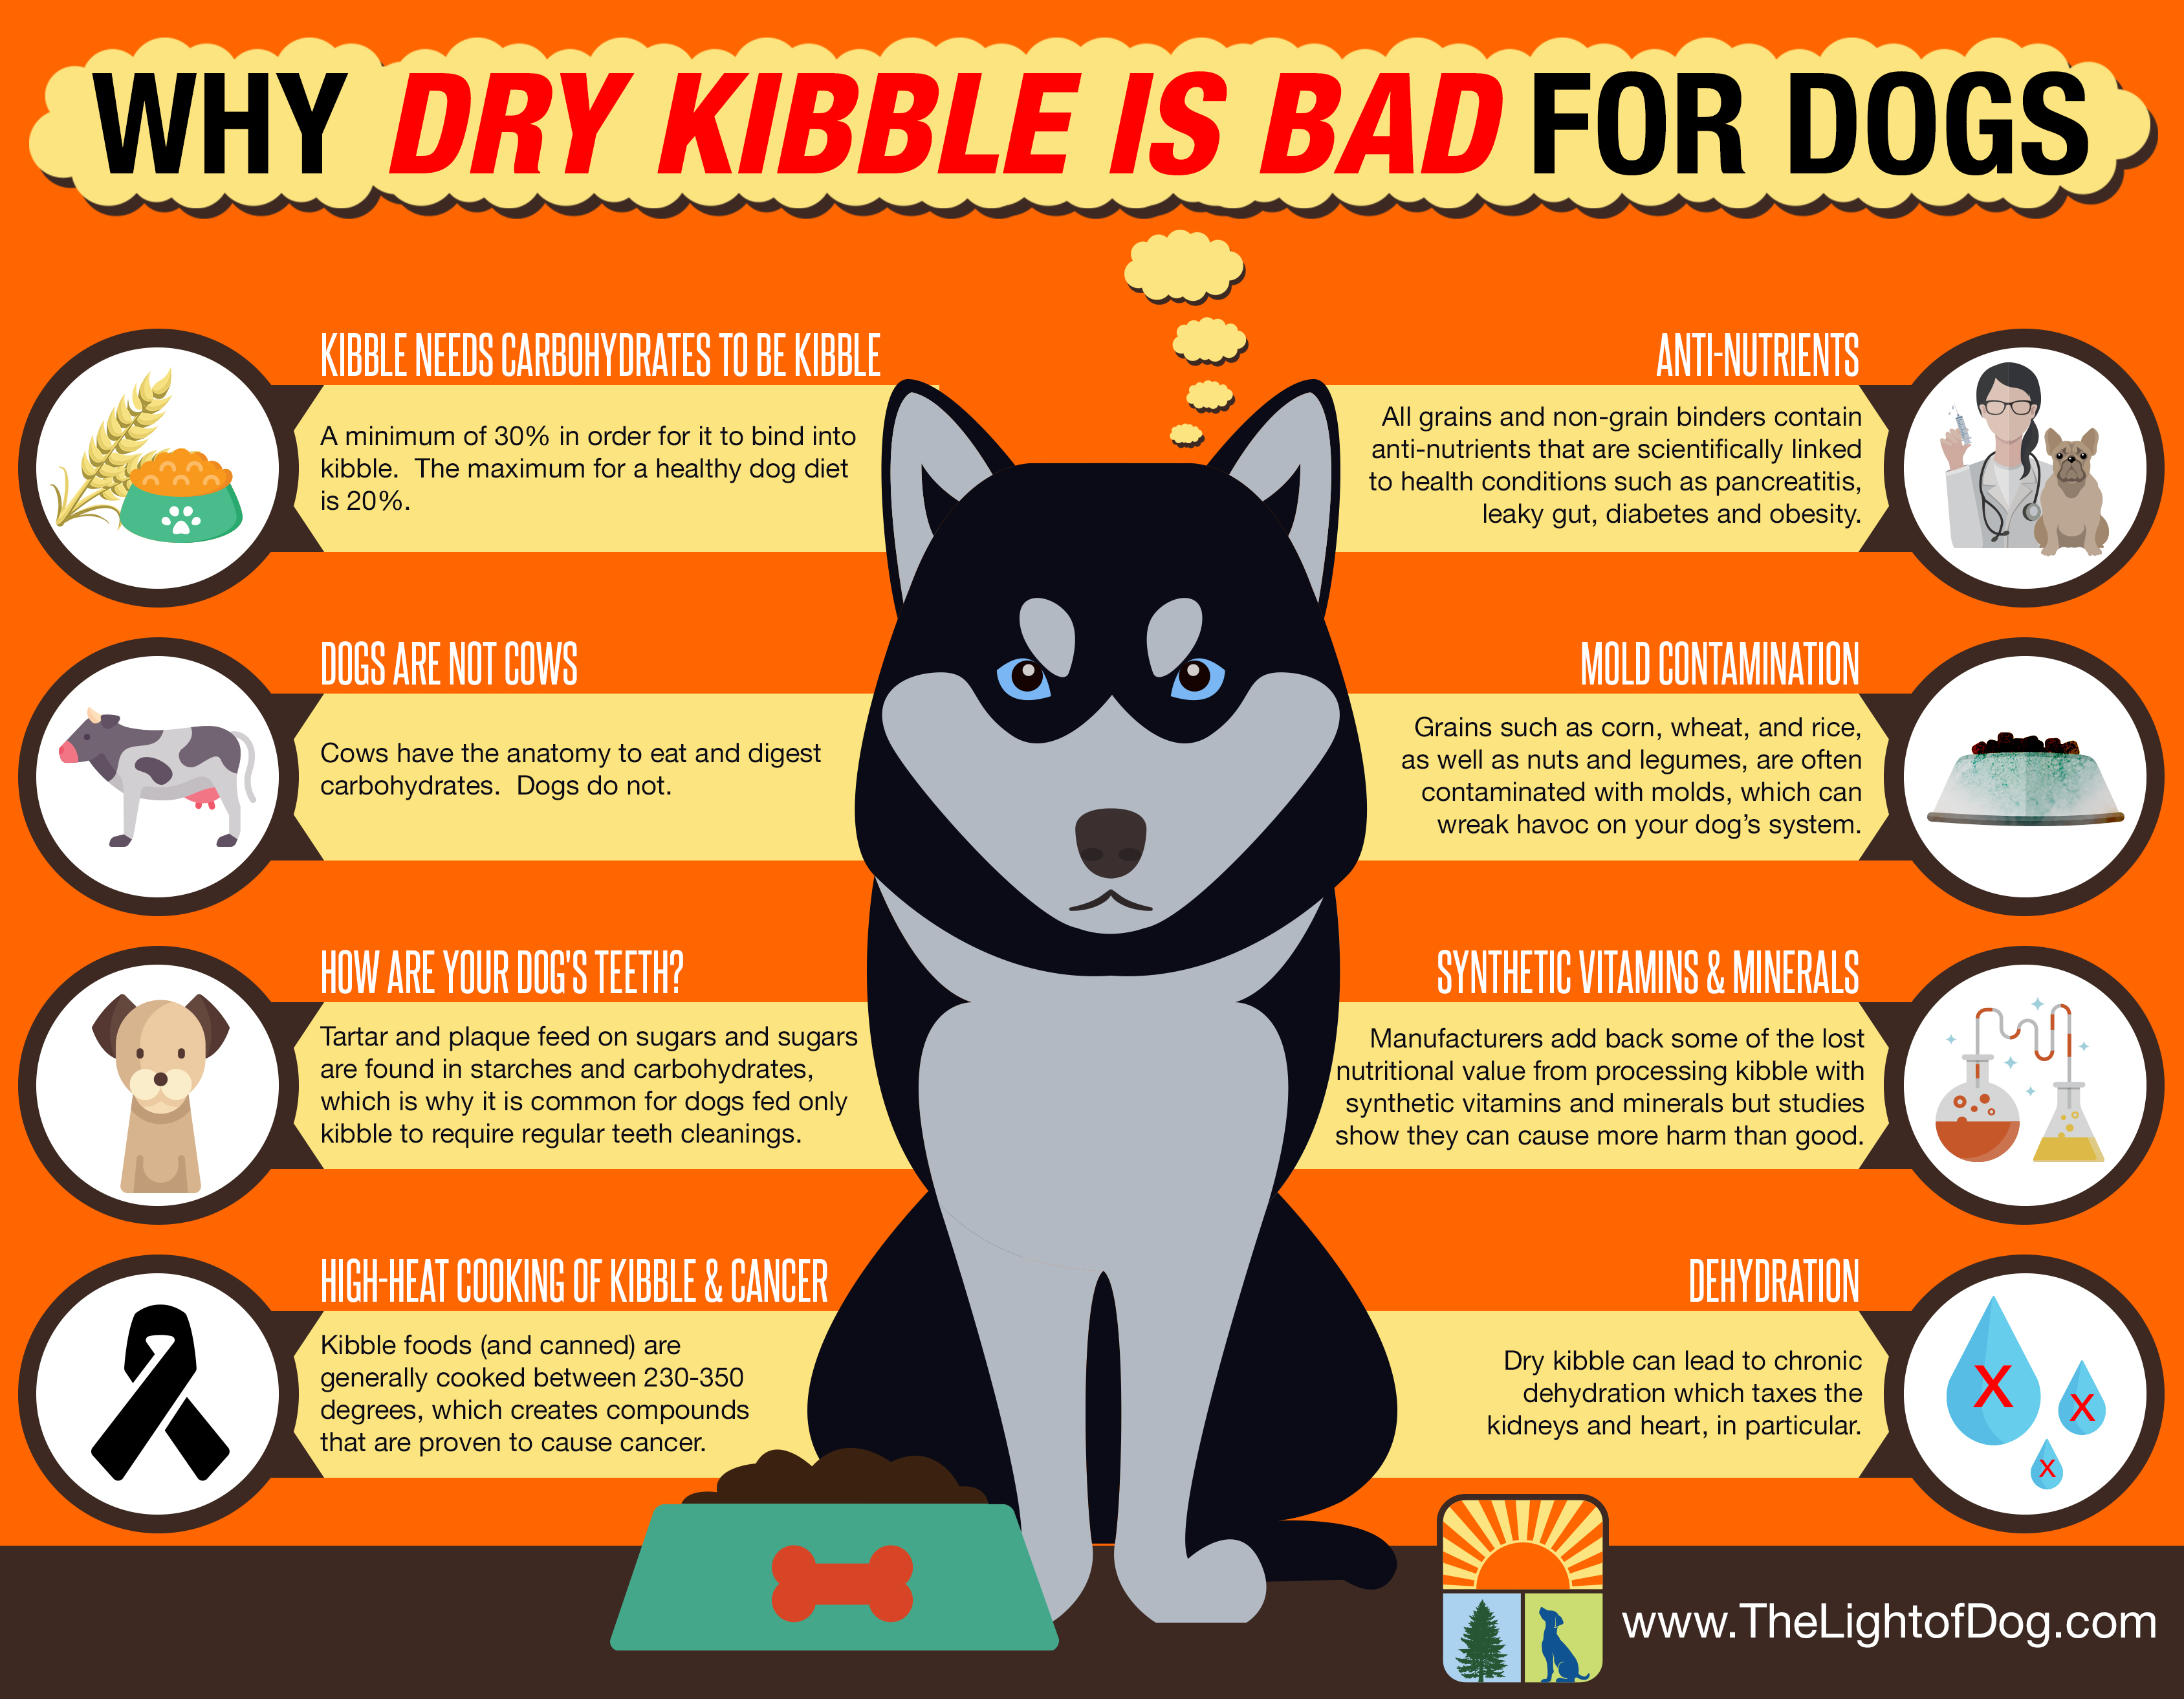 Why dry kibble is bad for dogs - The Light Of Dog